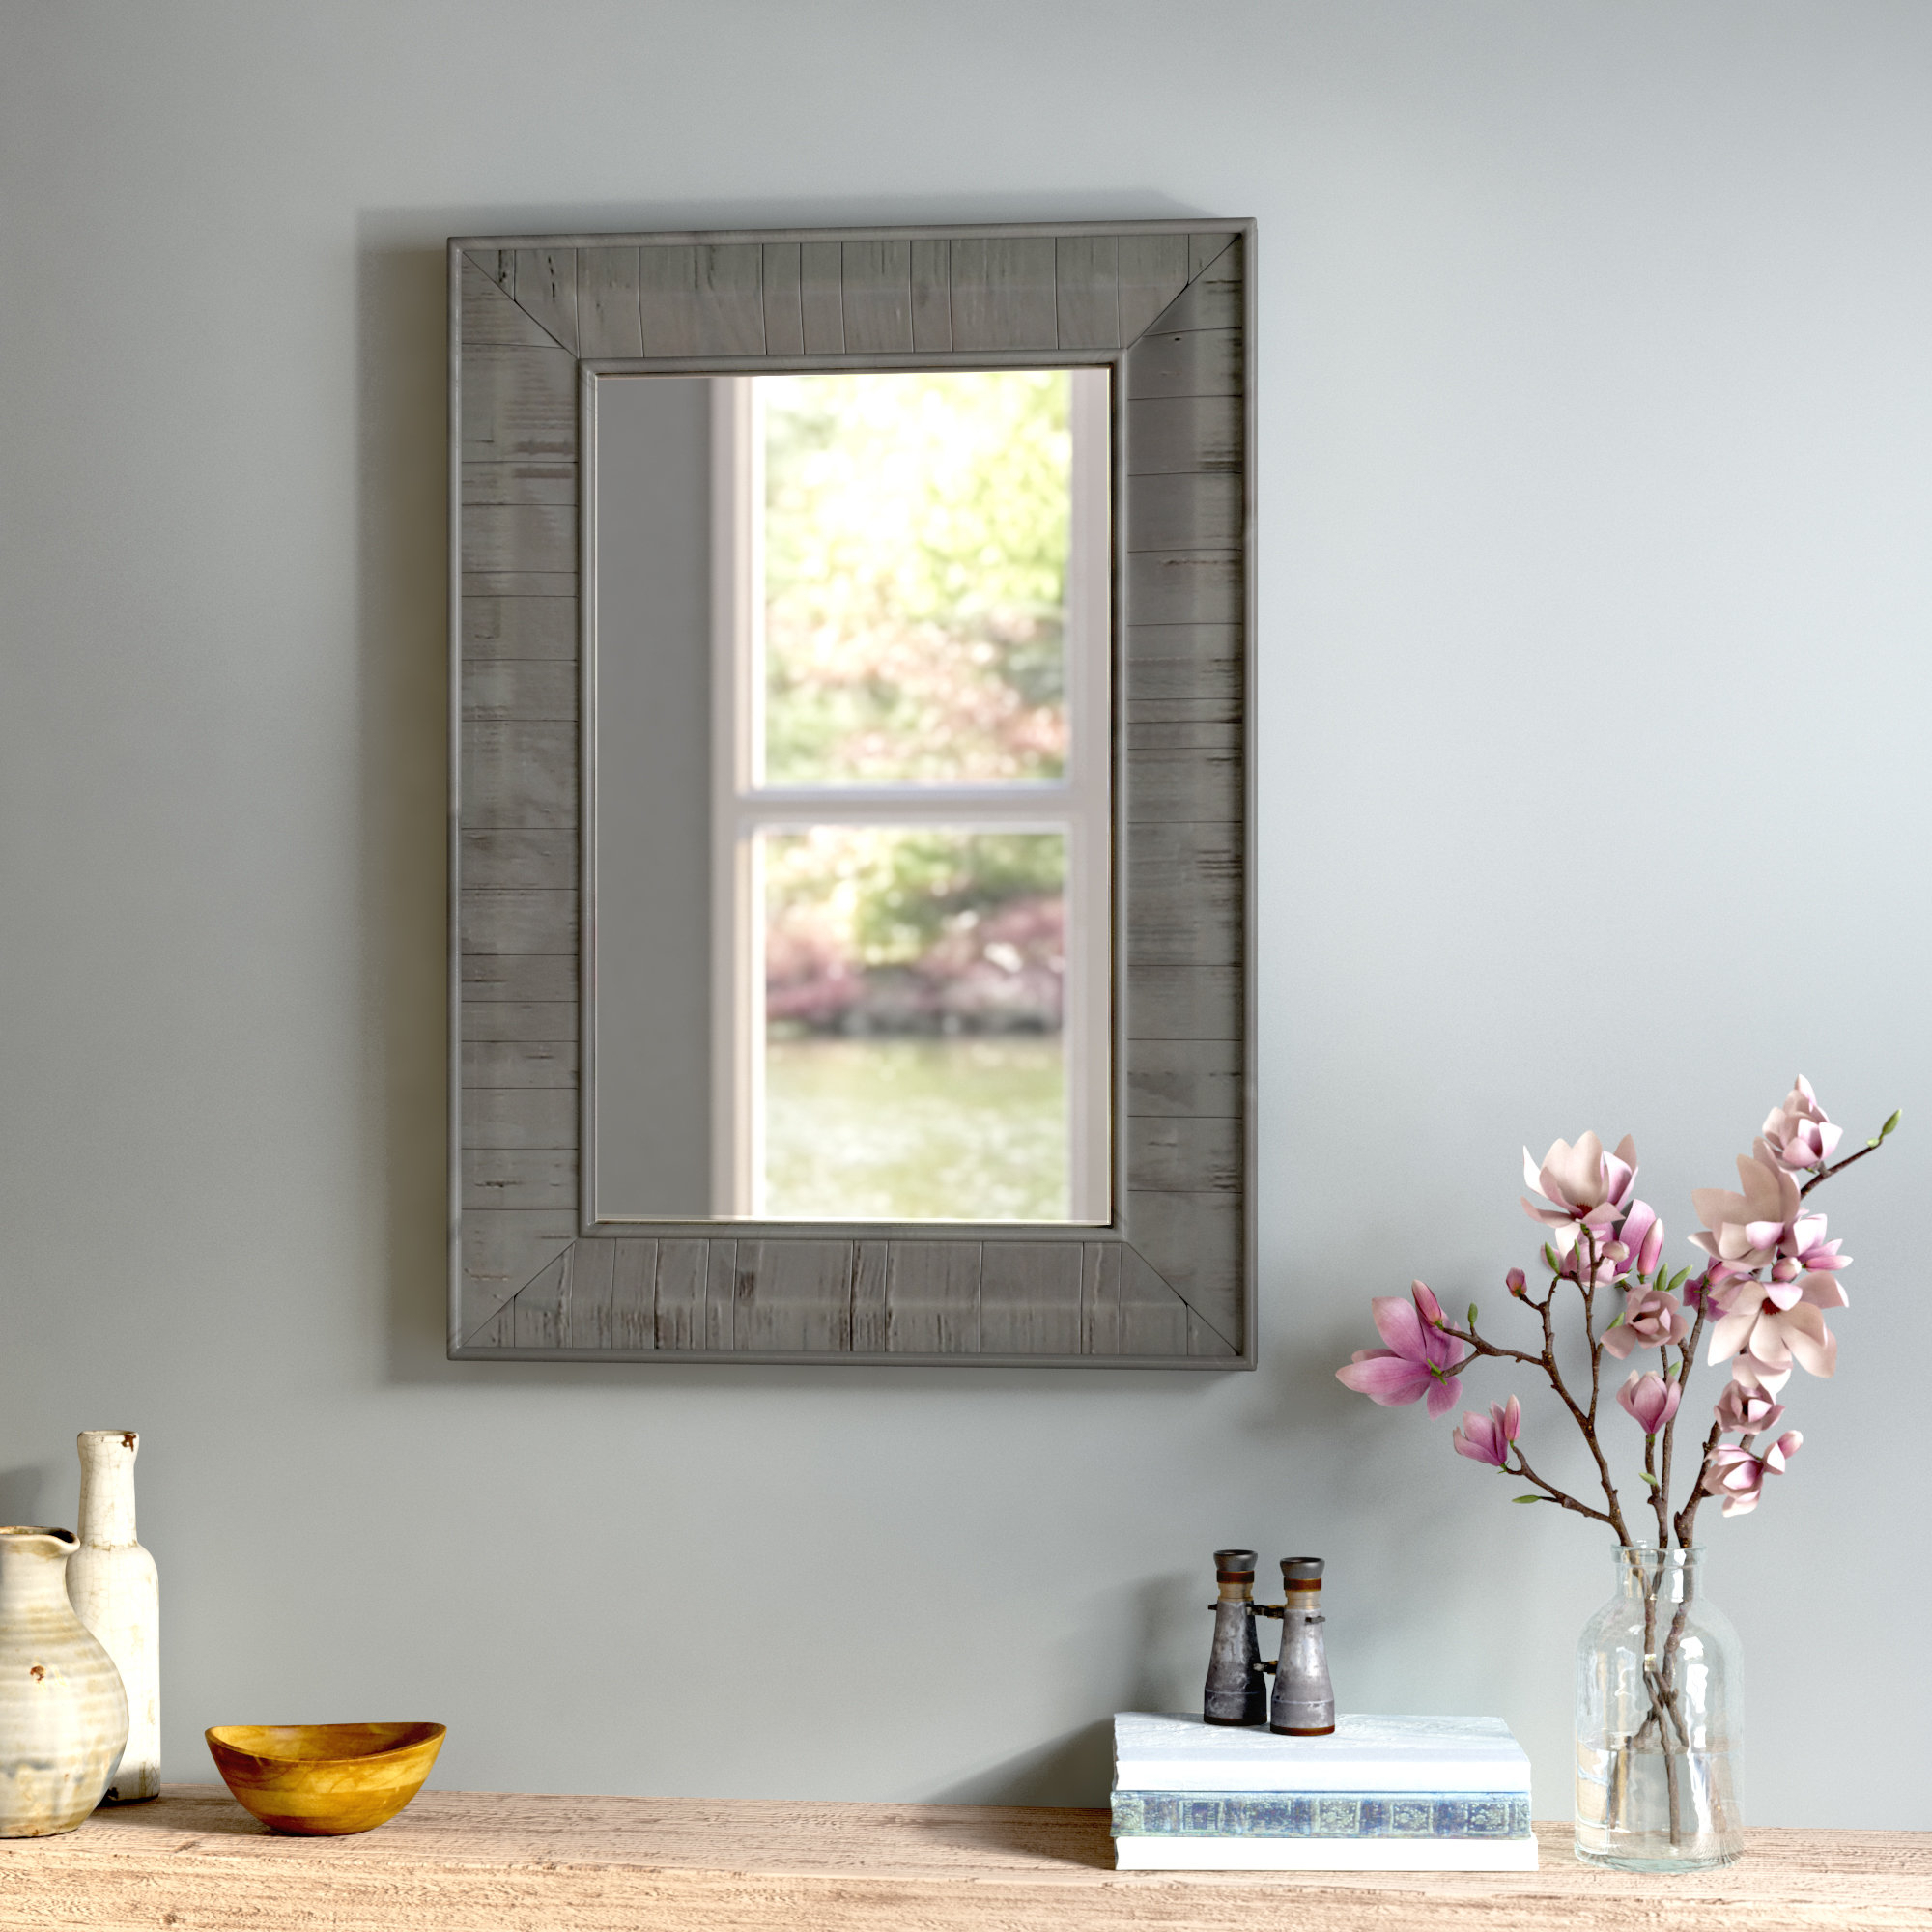 Clemmie Rectangle Rustic Wood Wall Mirror Intended For Most Current Rustic Wood Wall Mirrors (View 9 of 20)